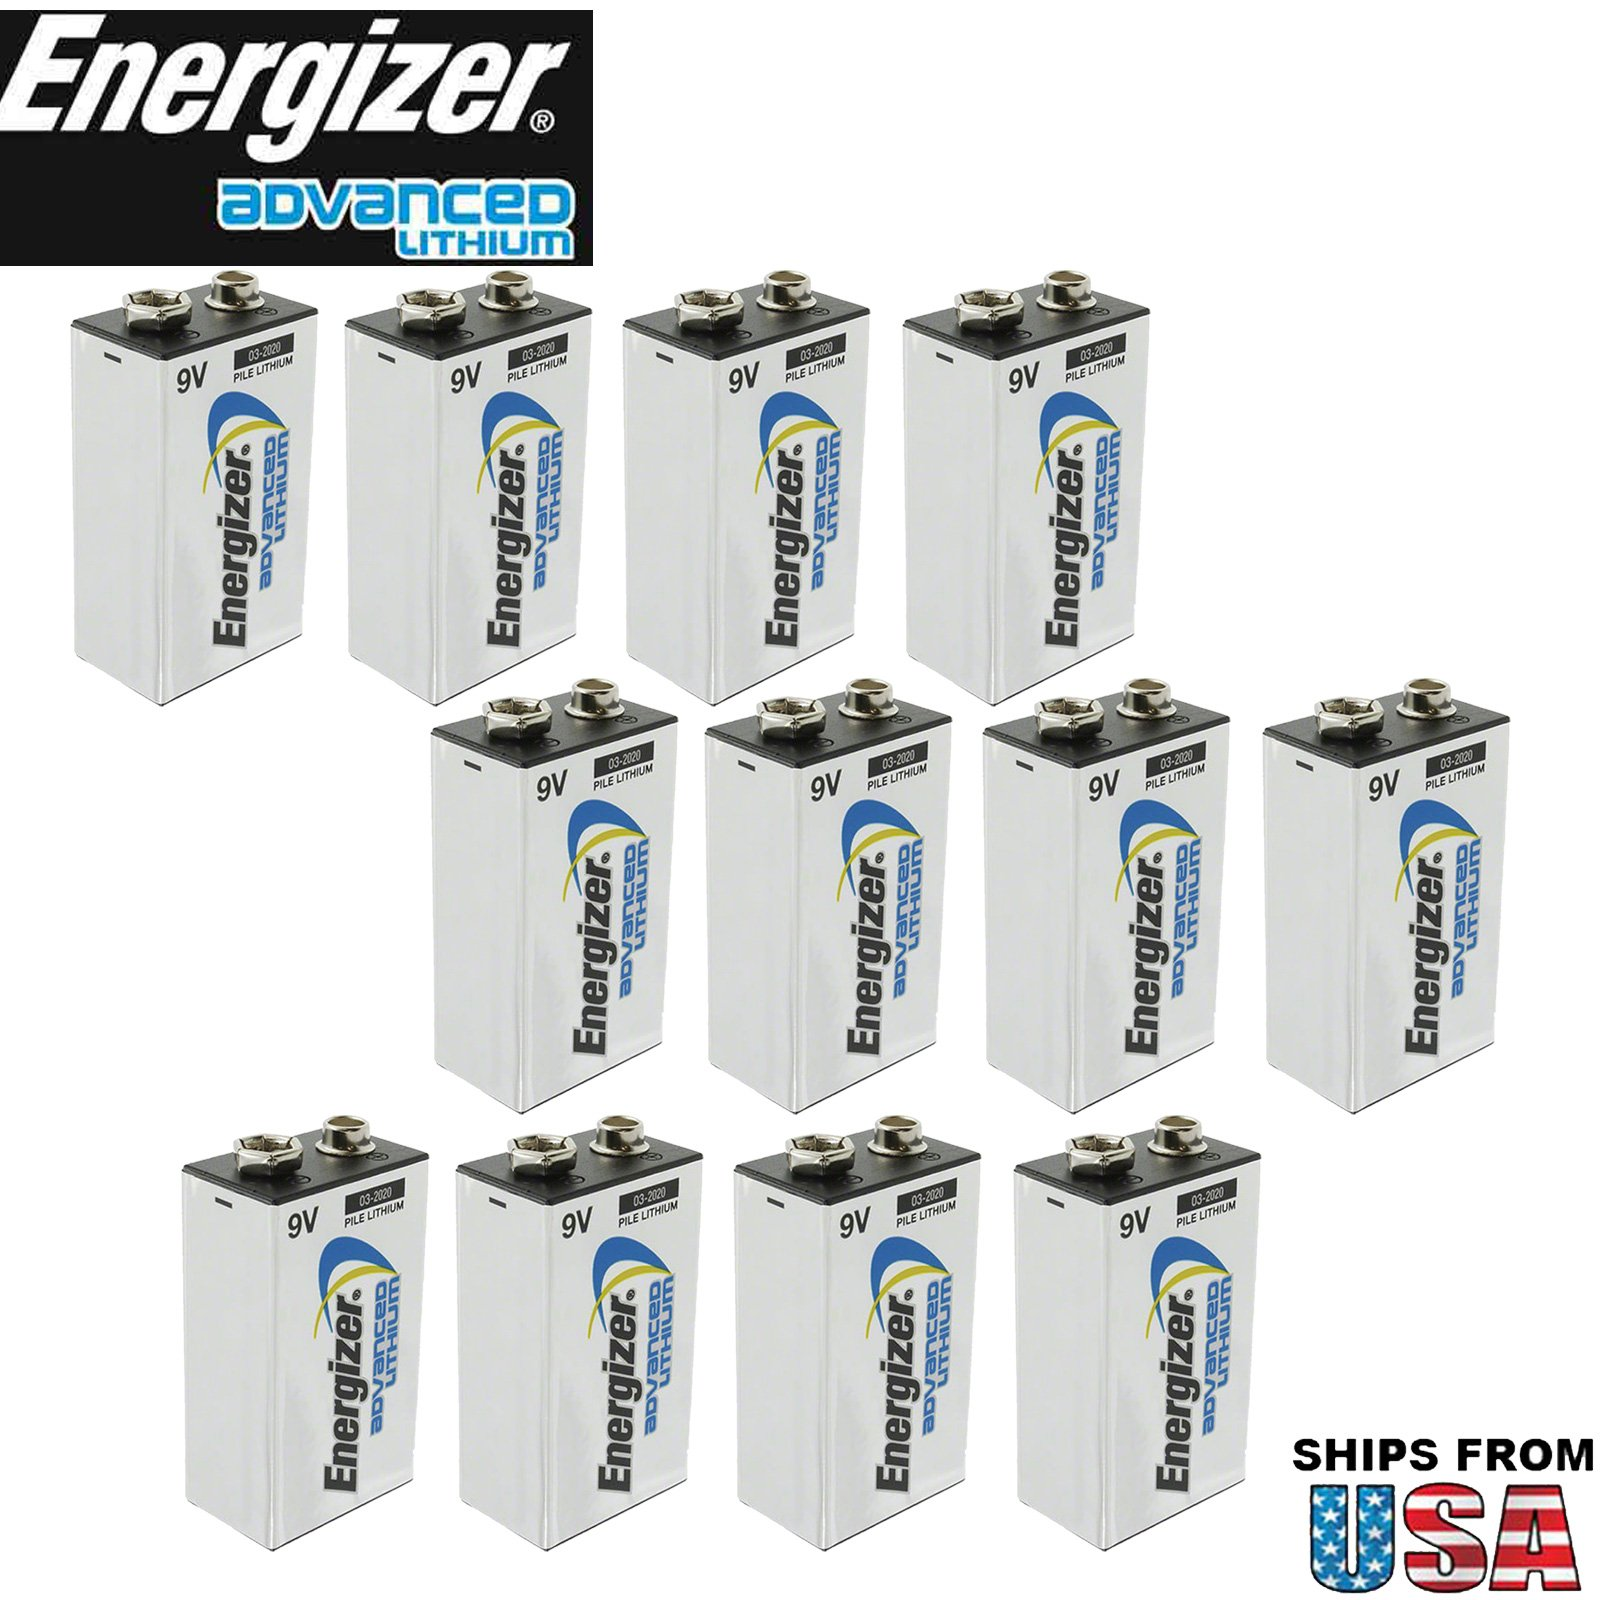 Captivant Amazon.com: Energizer 12pk 9V Advanced Lithium Batteries LA522 Bulk: Health  U0026 Personal Care